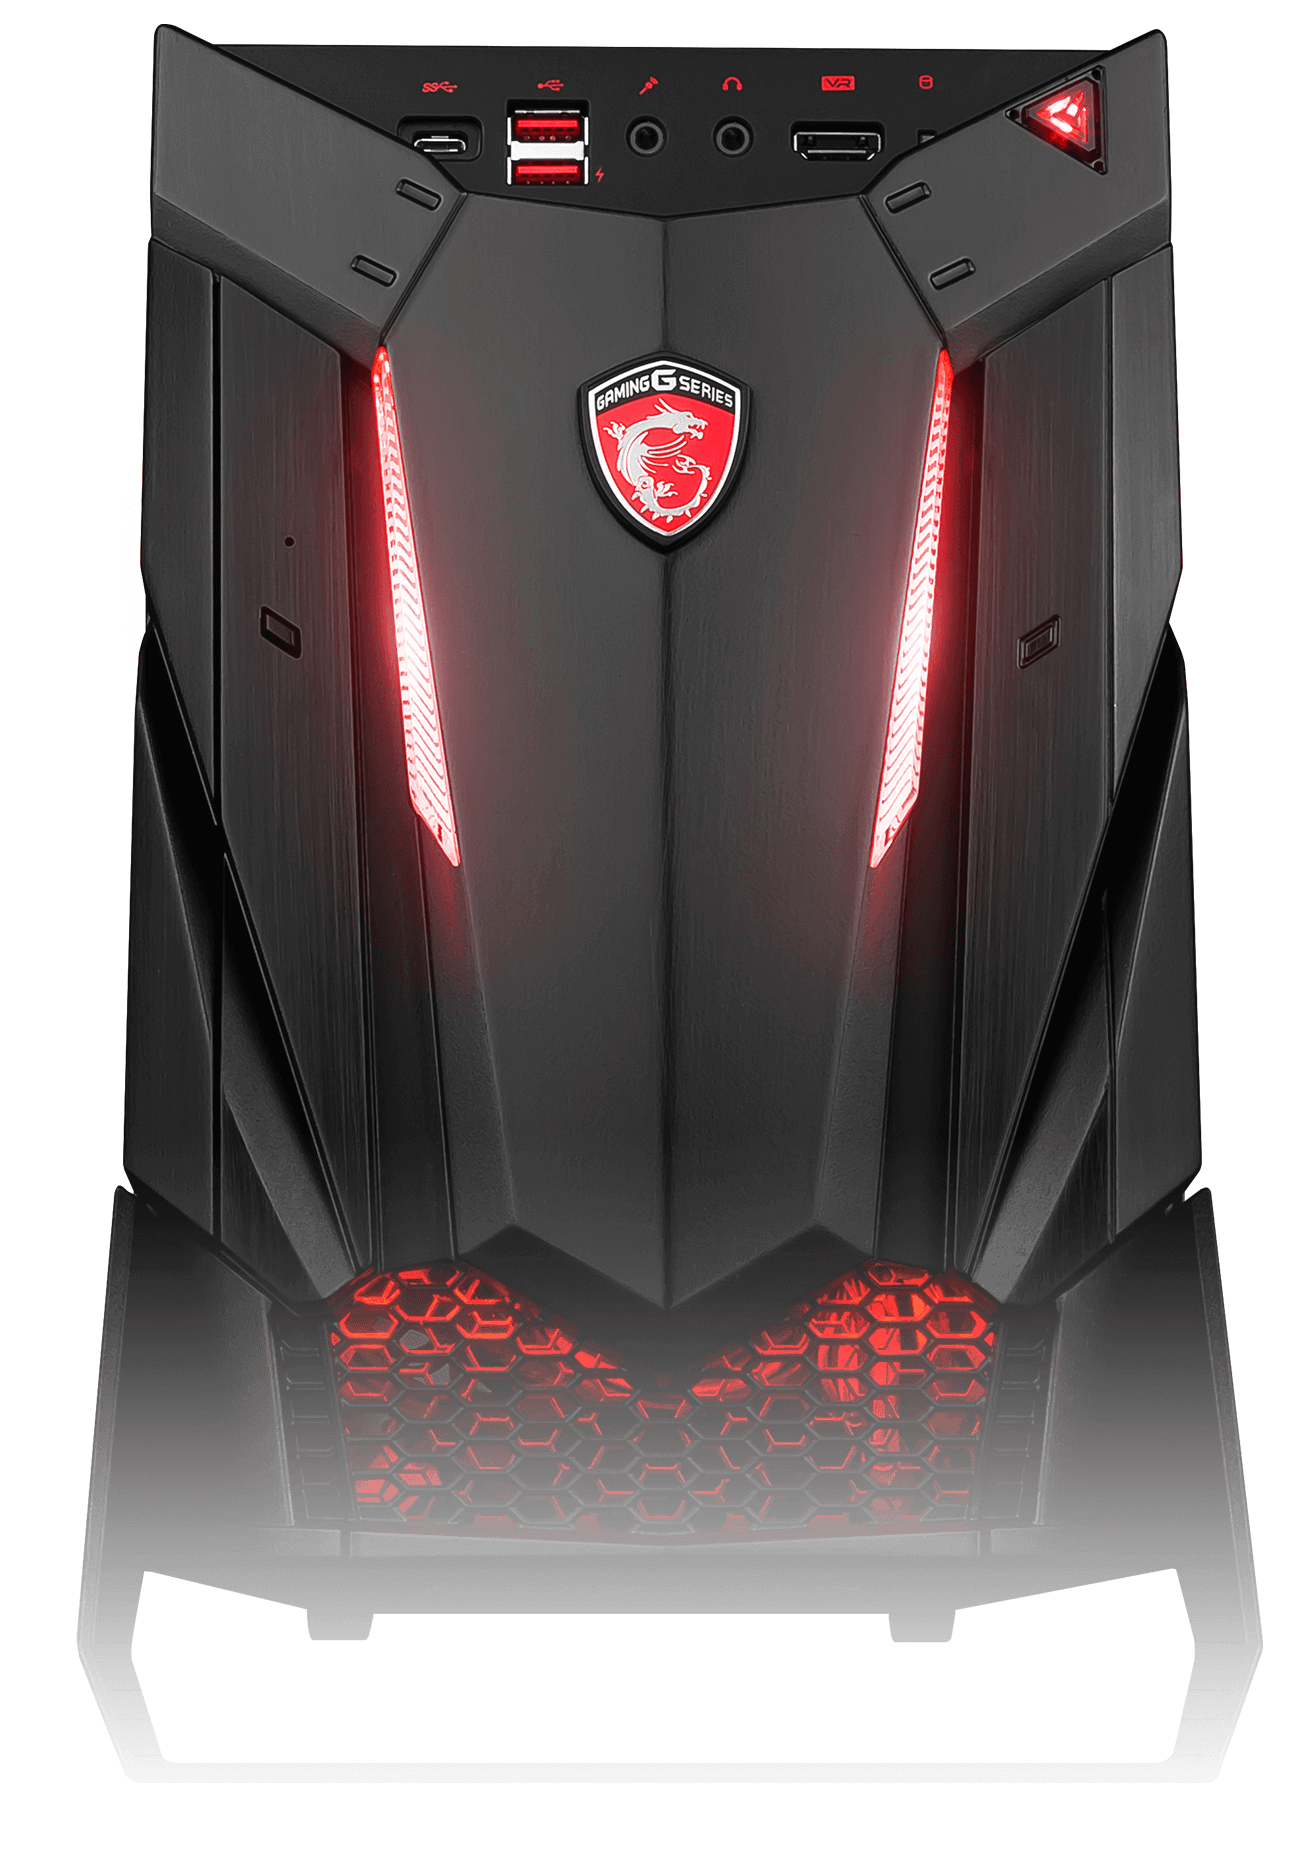 MSI NIGHTBLADE WINDOWS 7 X64 DRIVER